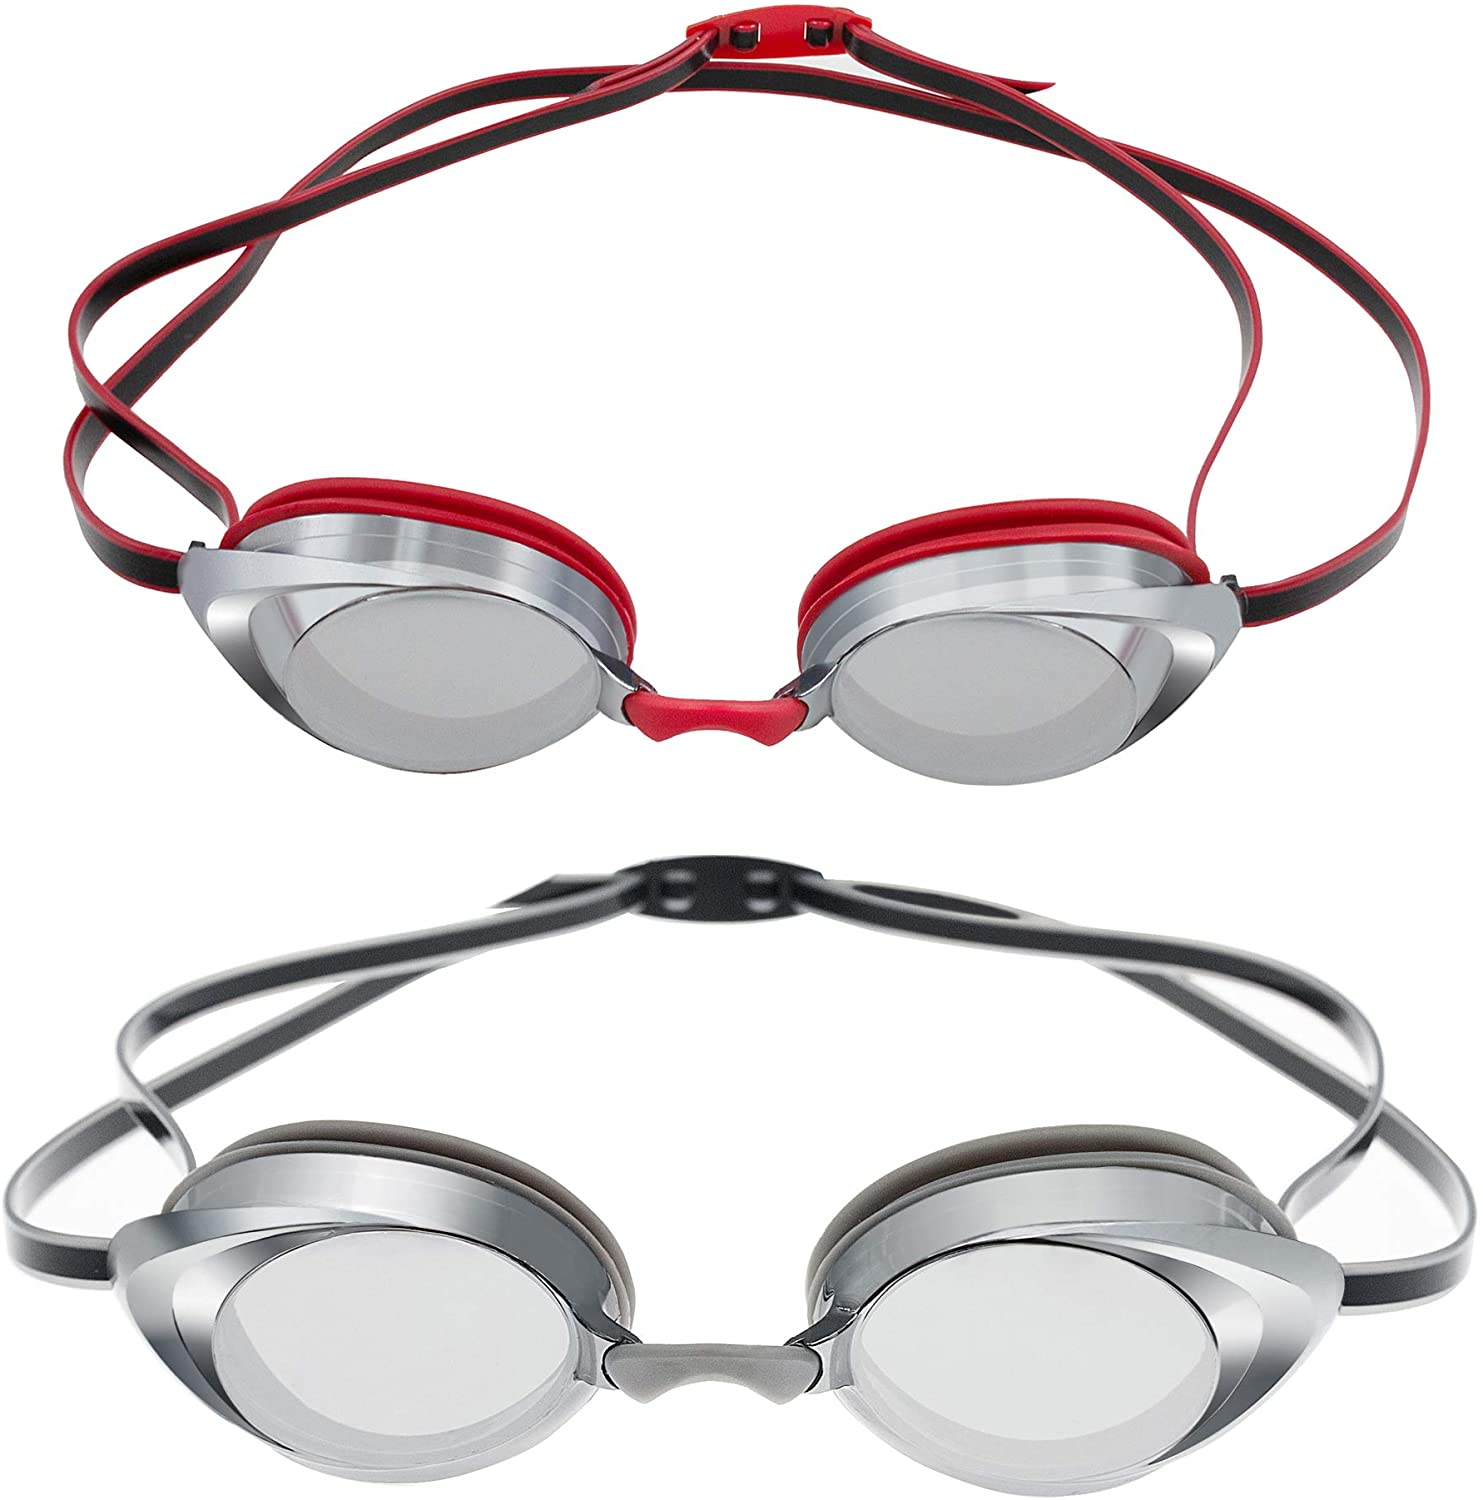 Nabevin Swim Goggles for Men and Women Of 2 Pack – Mirrored Swim Goggles Leakproof Design – Soft Silicone Seals (Grey-Red)